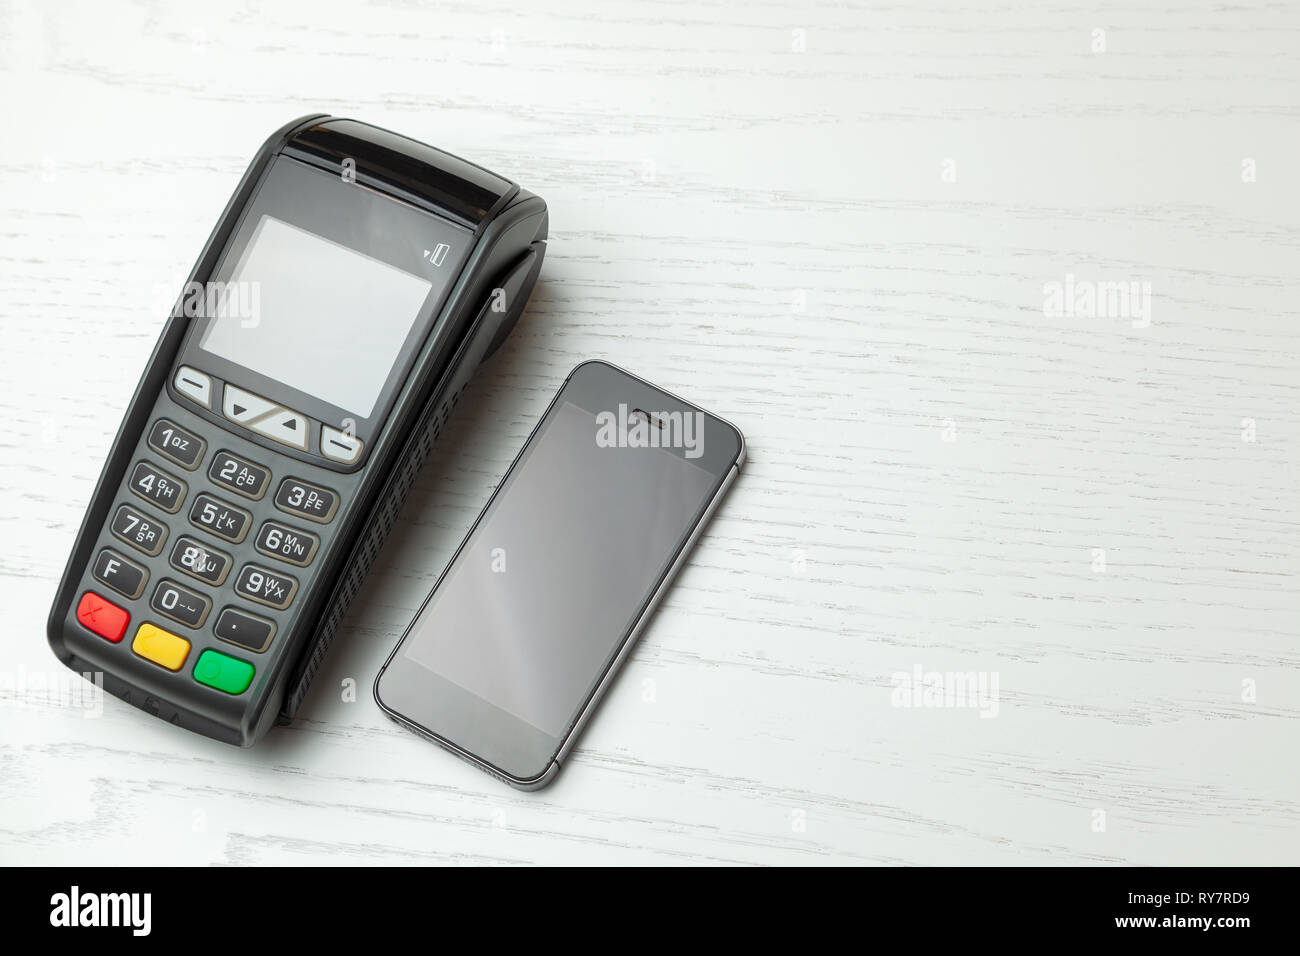 POS terminal, Payment Machine with mobile phone on white background. Contactless payment with NFC technology. - Stock Image